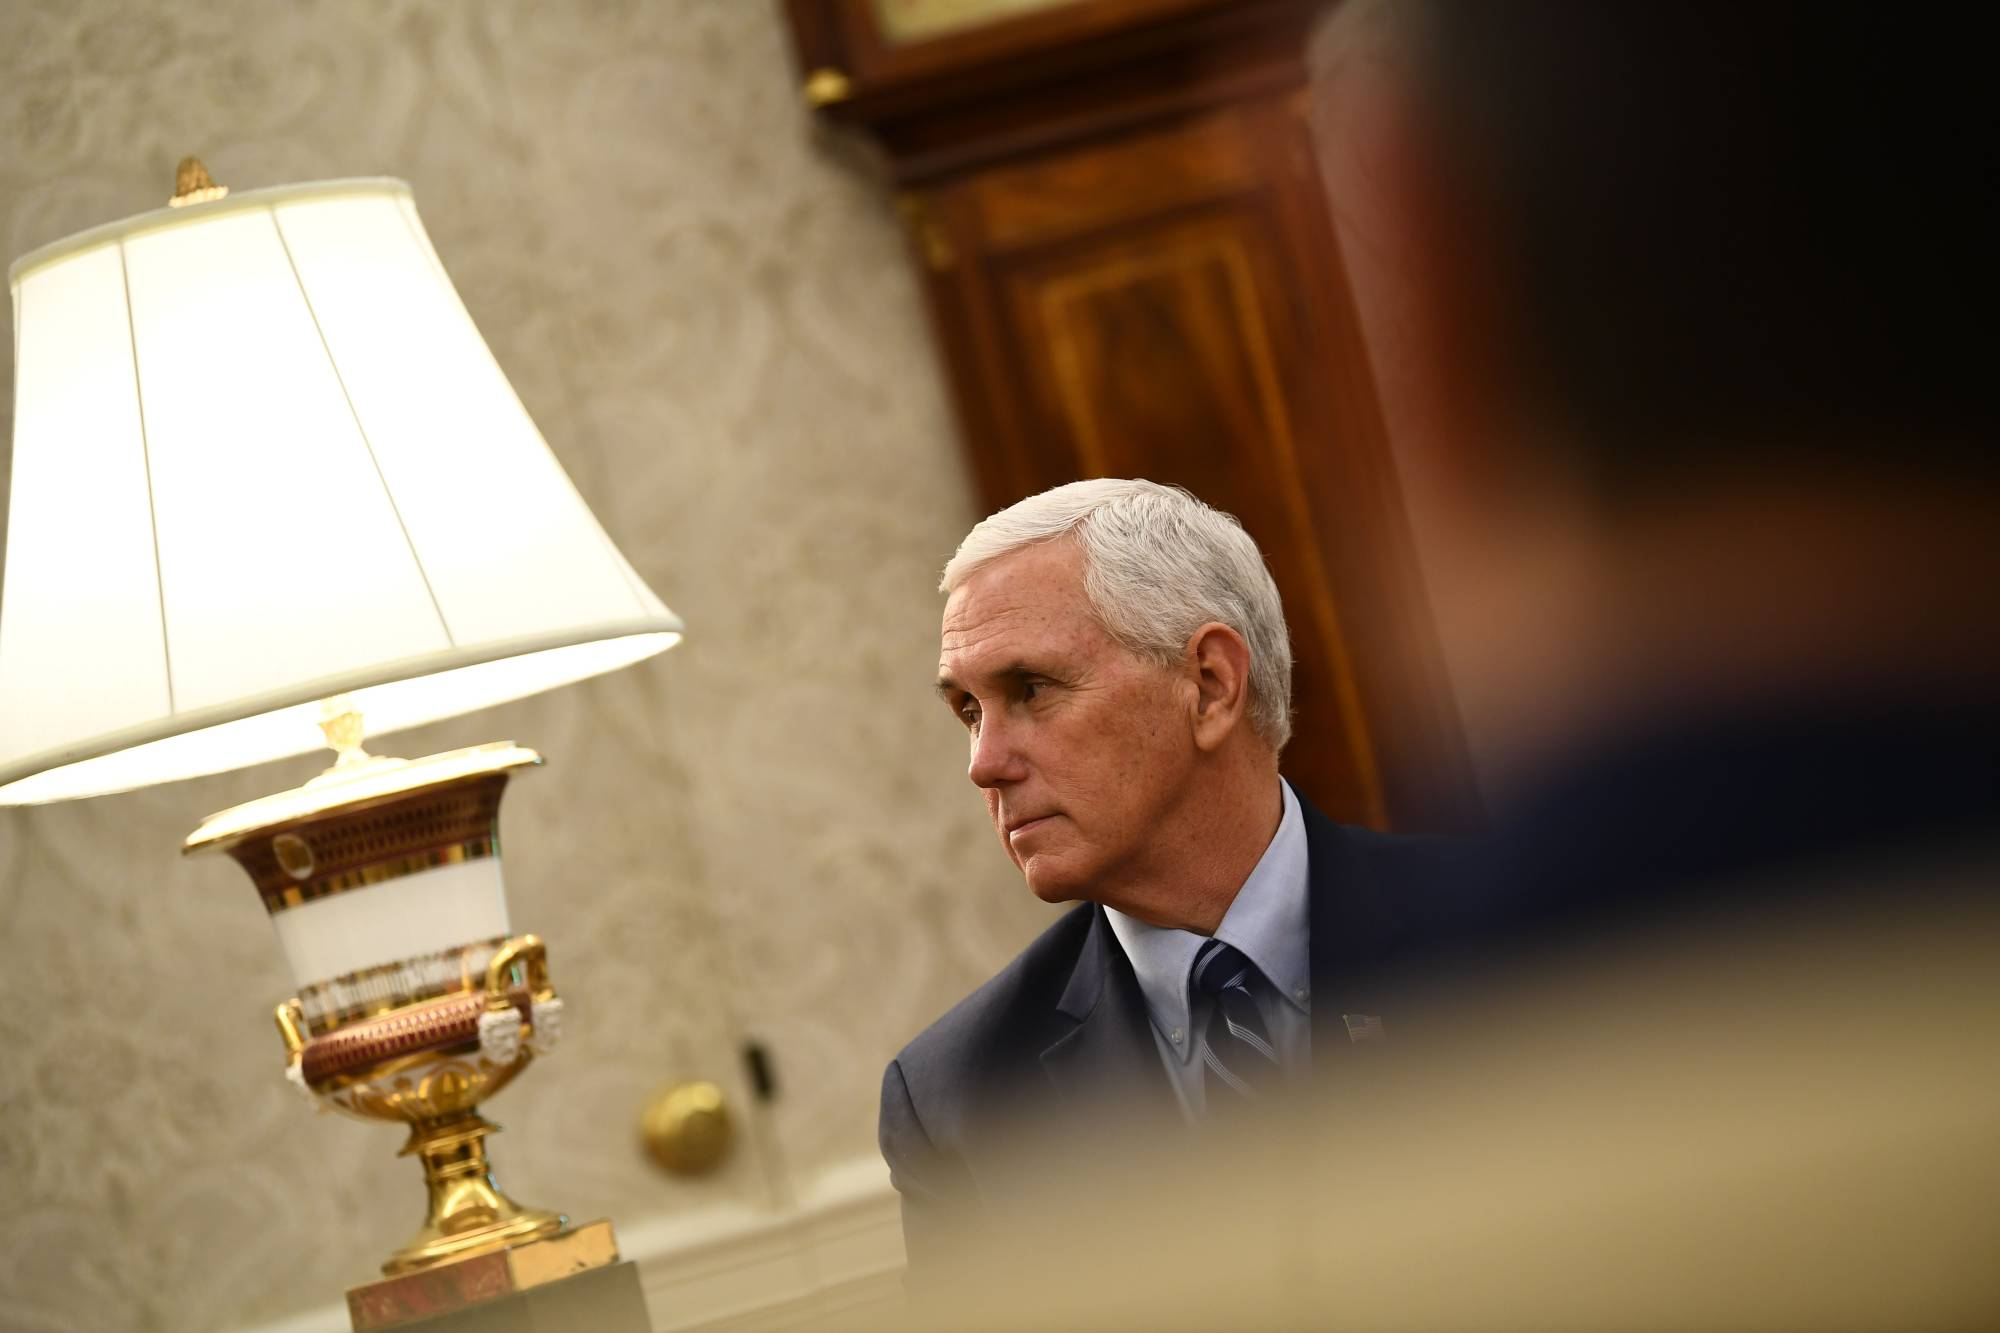 U.S. Vice President Mike Pence listens as U.S. President Donald Trump speaks during a meeting with Texas Gov. Greg Abbott on Thursday in the Oval office of the White House. | AFP-JIJI